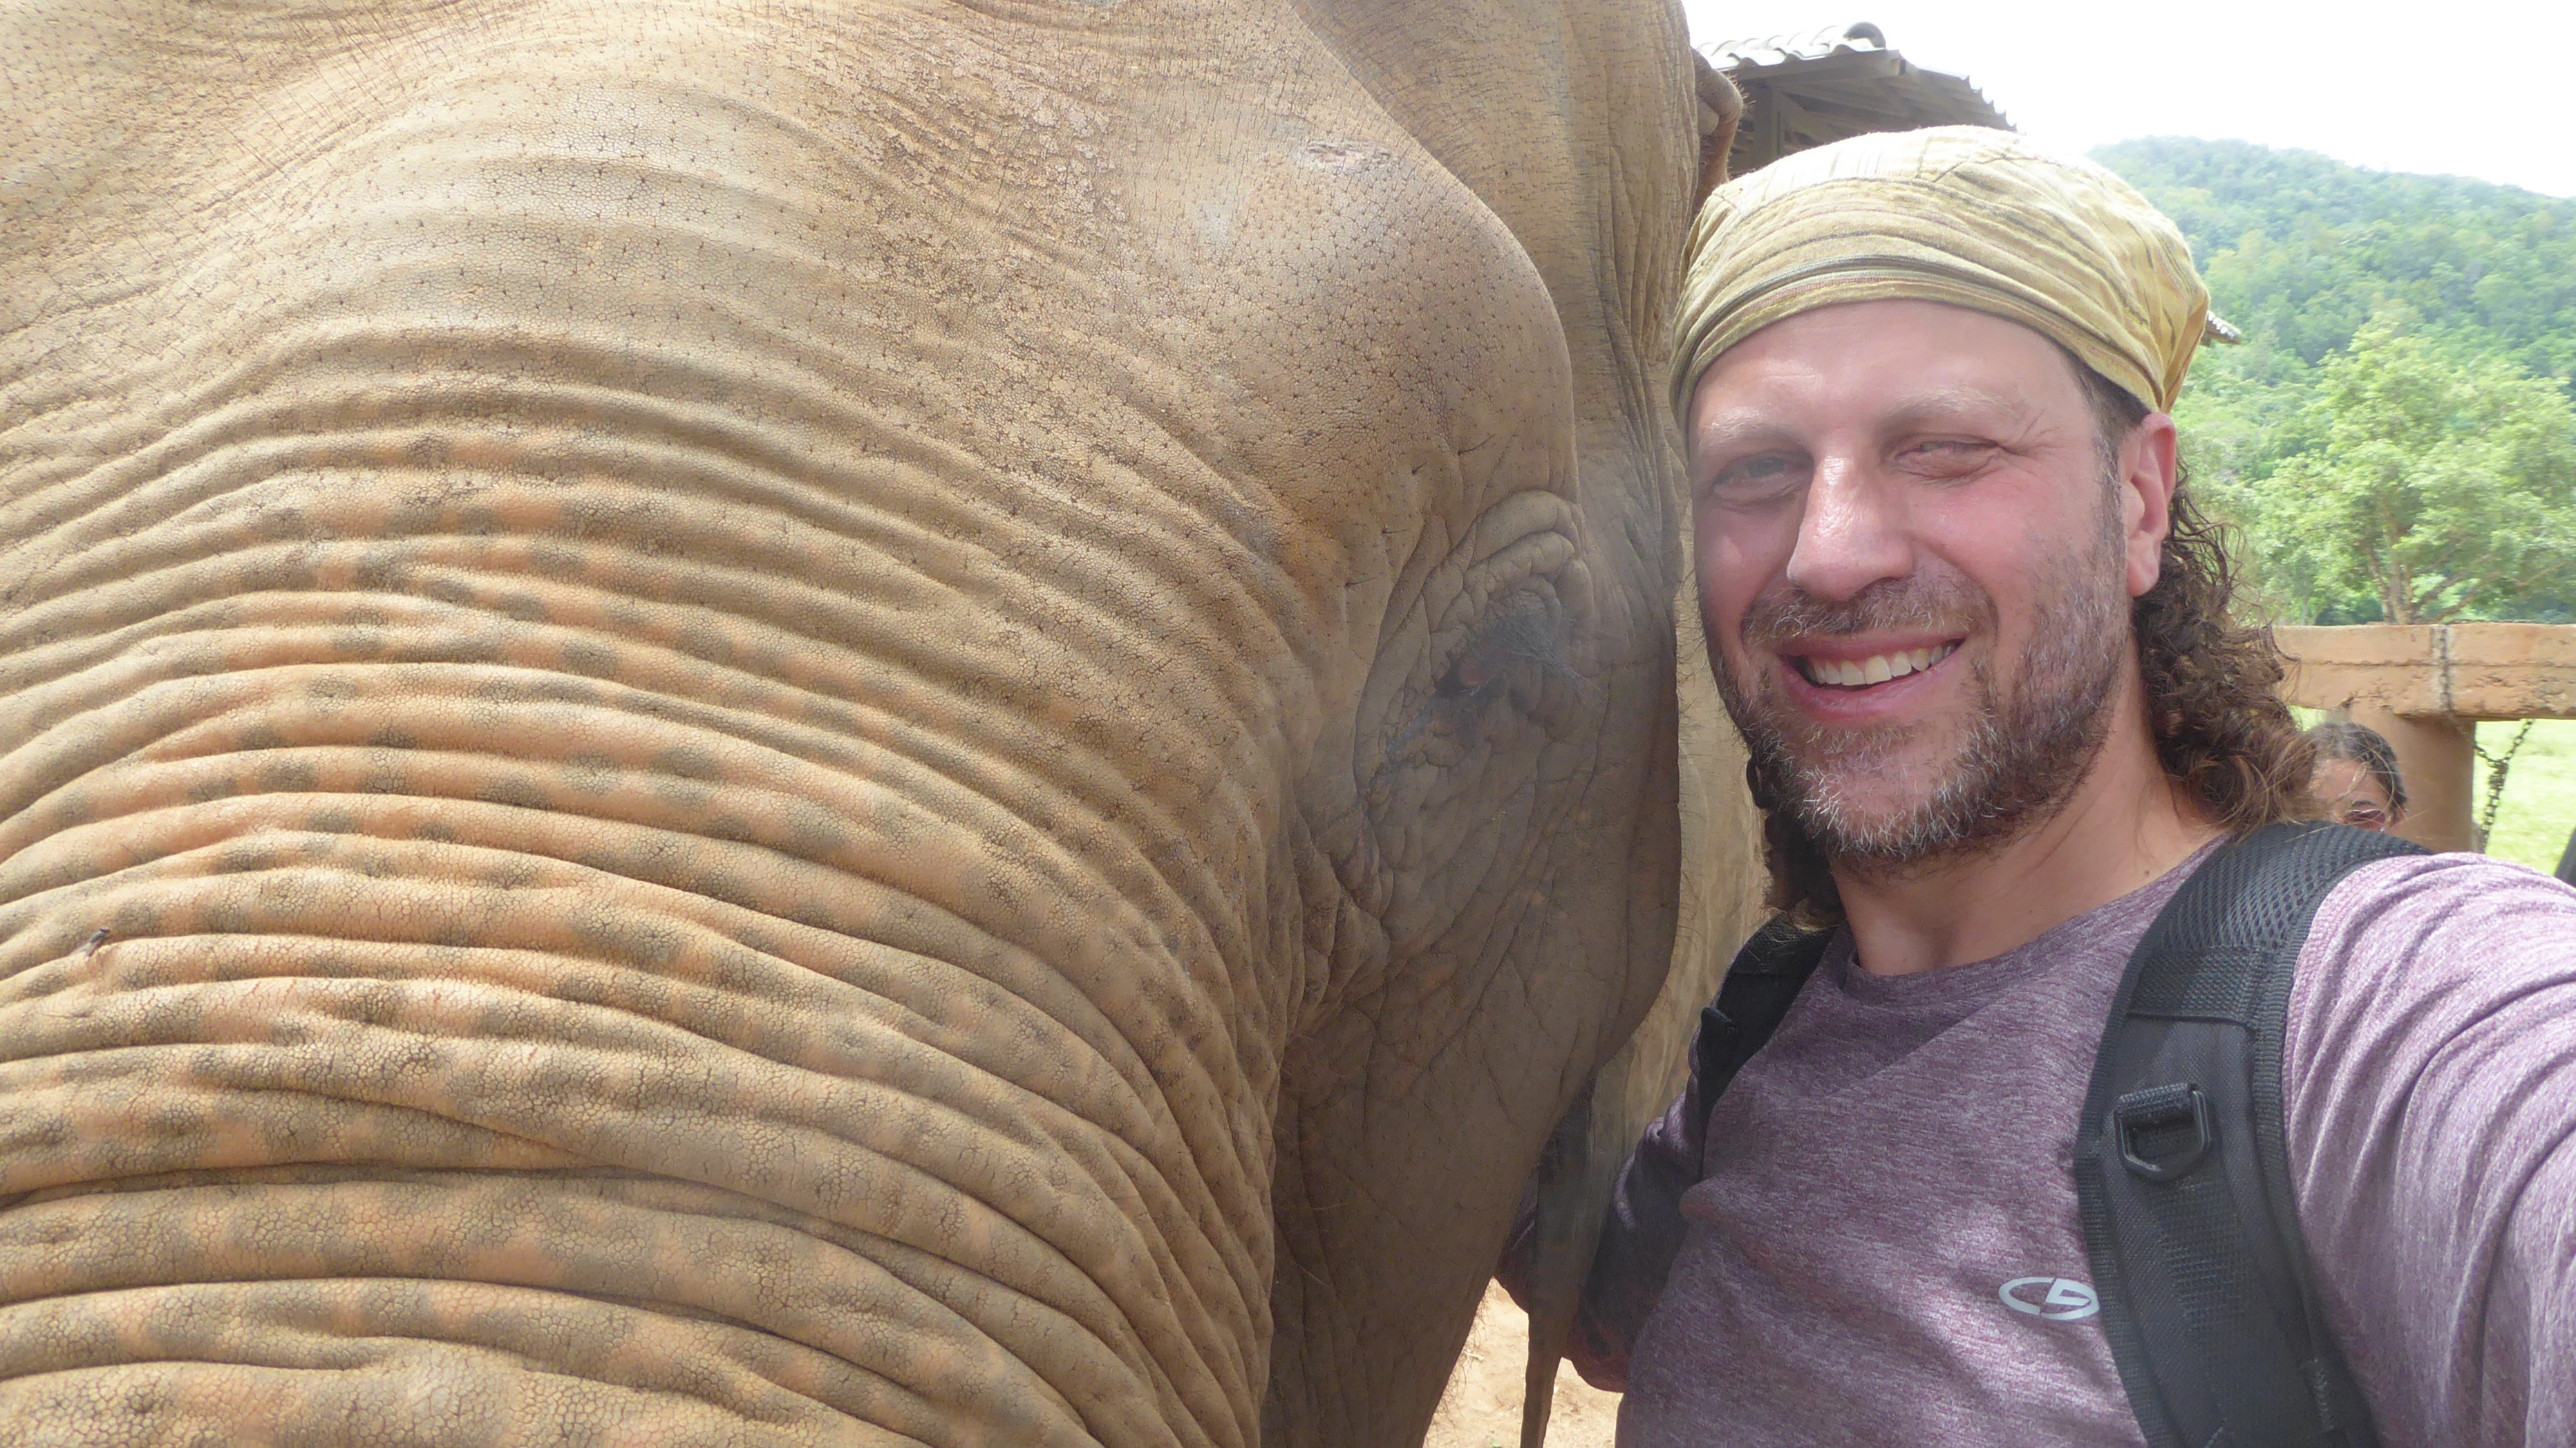 Dan Brook with an elephant at the amazing Elephant Nature Park sanctuary in Chiang Mai